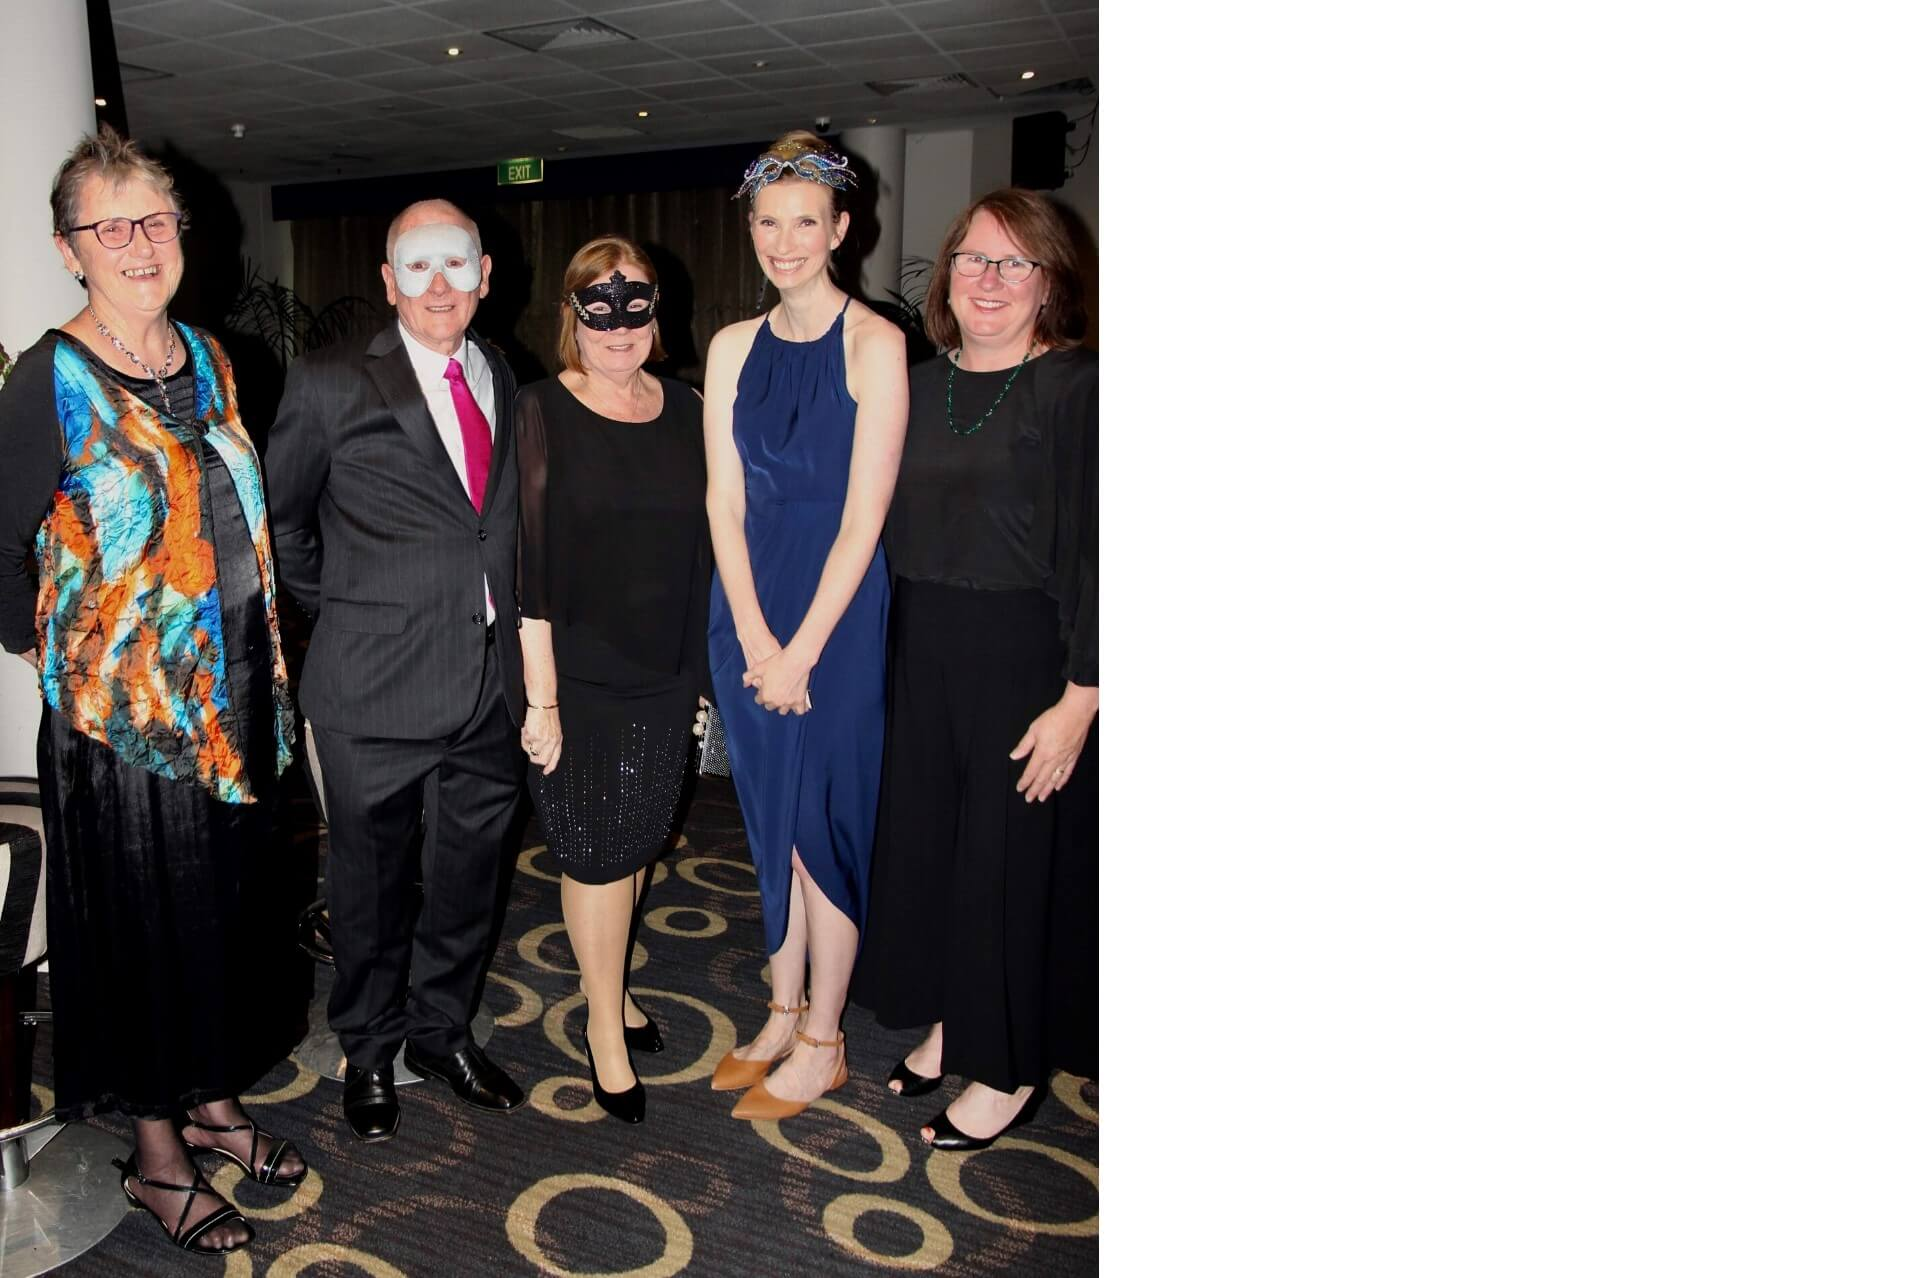 Lord Mayor with Cr Patricia Prociv, Lady Mayoress Jenny Dwyer, Liz Scully Parramatta Women's Shelter Chair, Cr Donna Davis at the Masquerade Ball